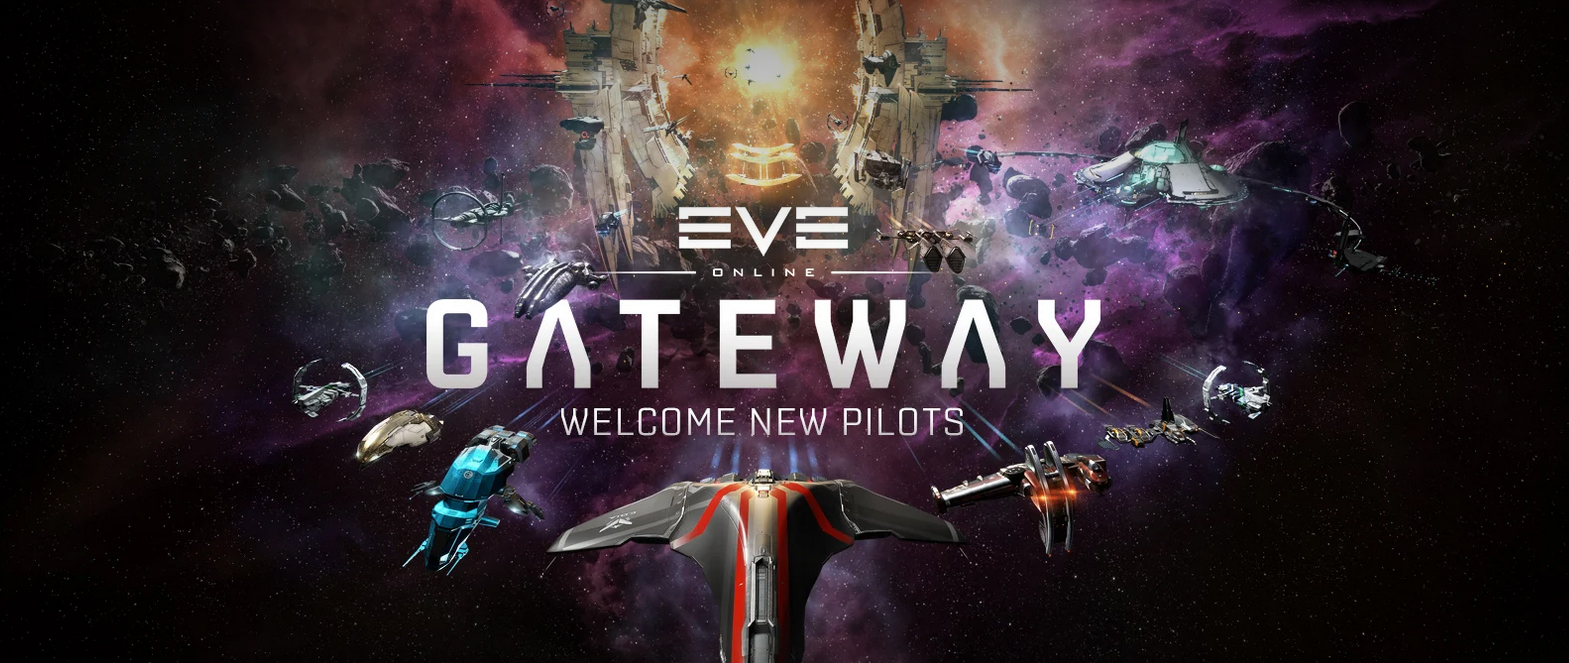 EVE Online: Gateway Has Launched, Making EVE Slightly More Newbie Friendly